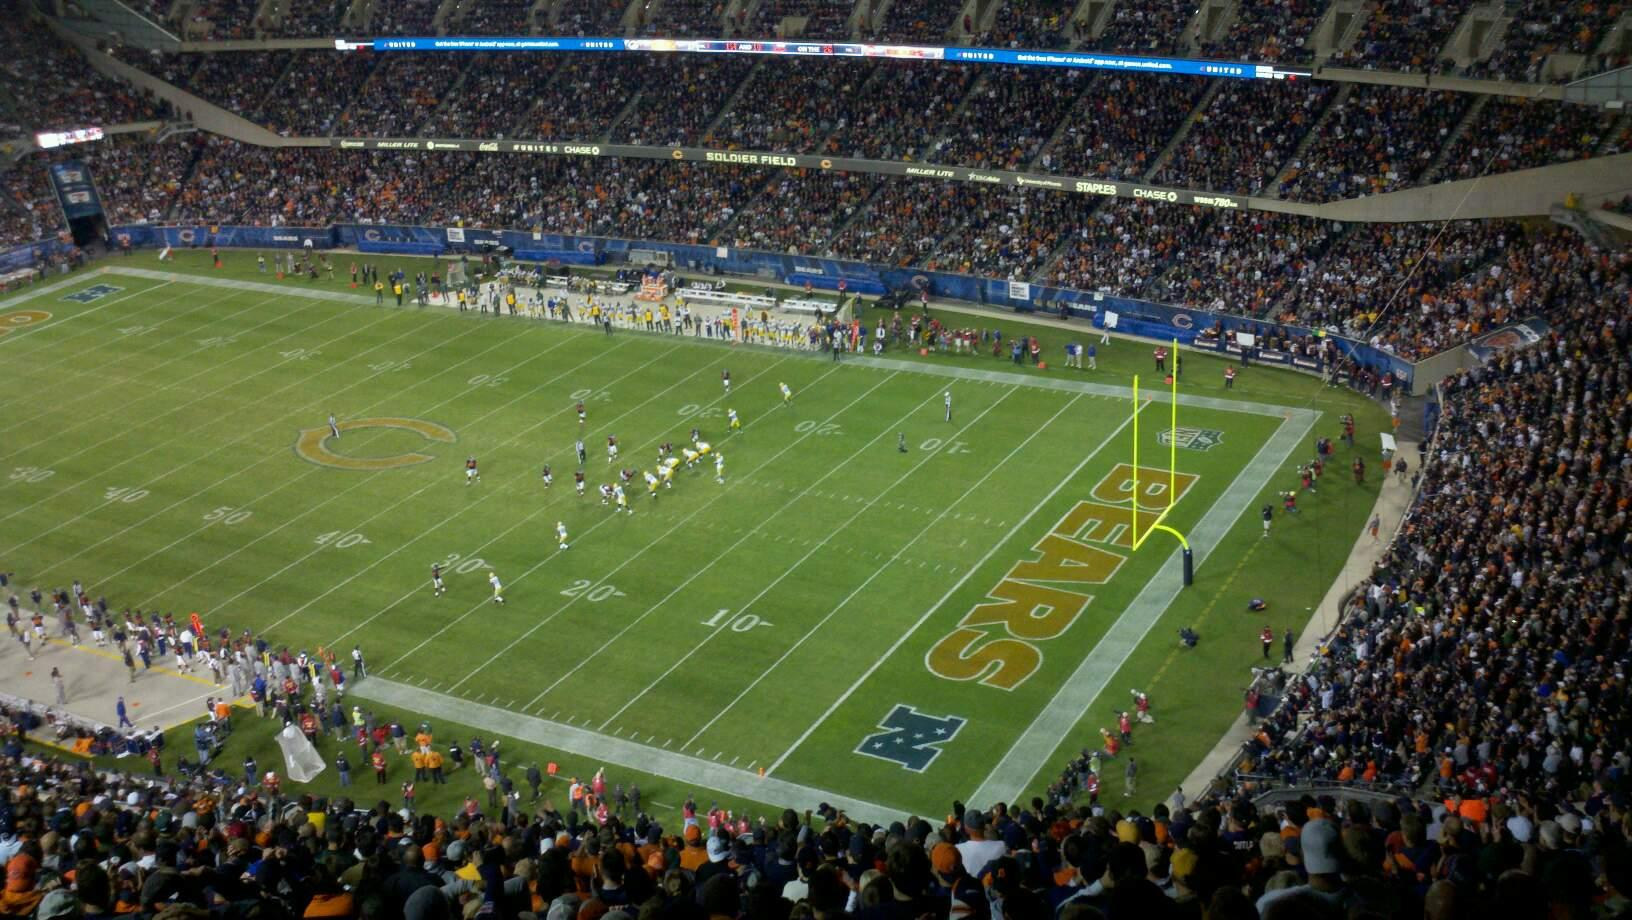 Chicago Bears - Soldier Field Section 430 - RateYourSeats.com